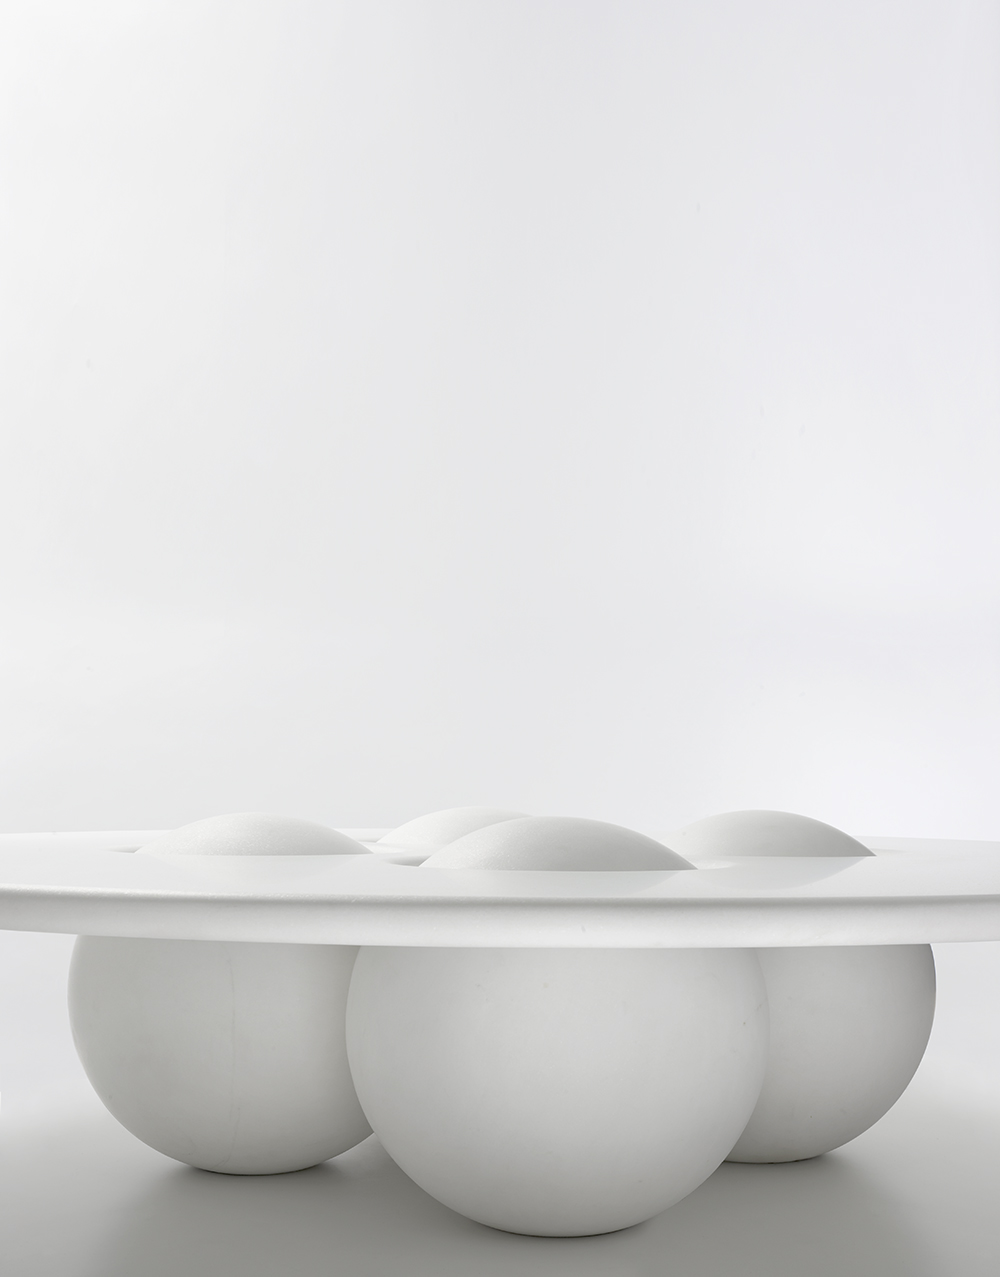 Brooksbank & Collins_The Kubrick Table_5_1000pix